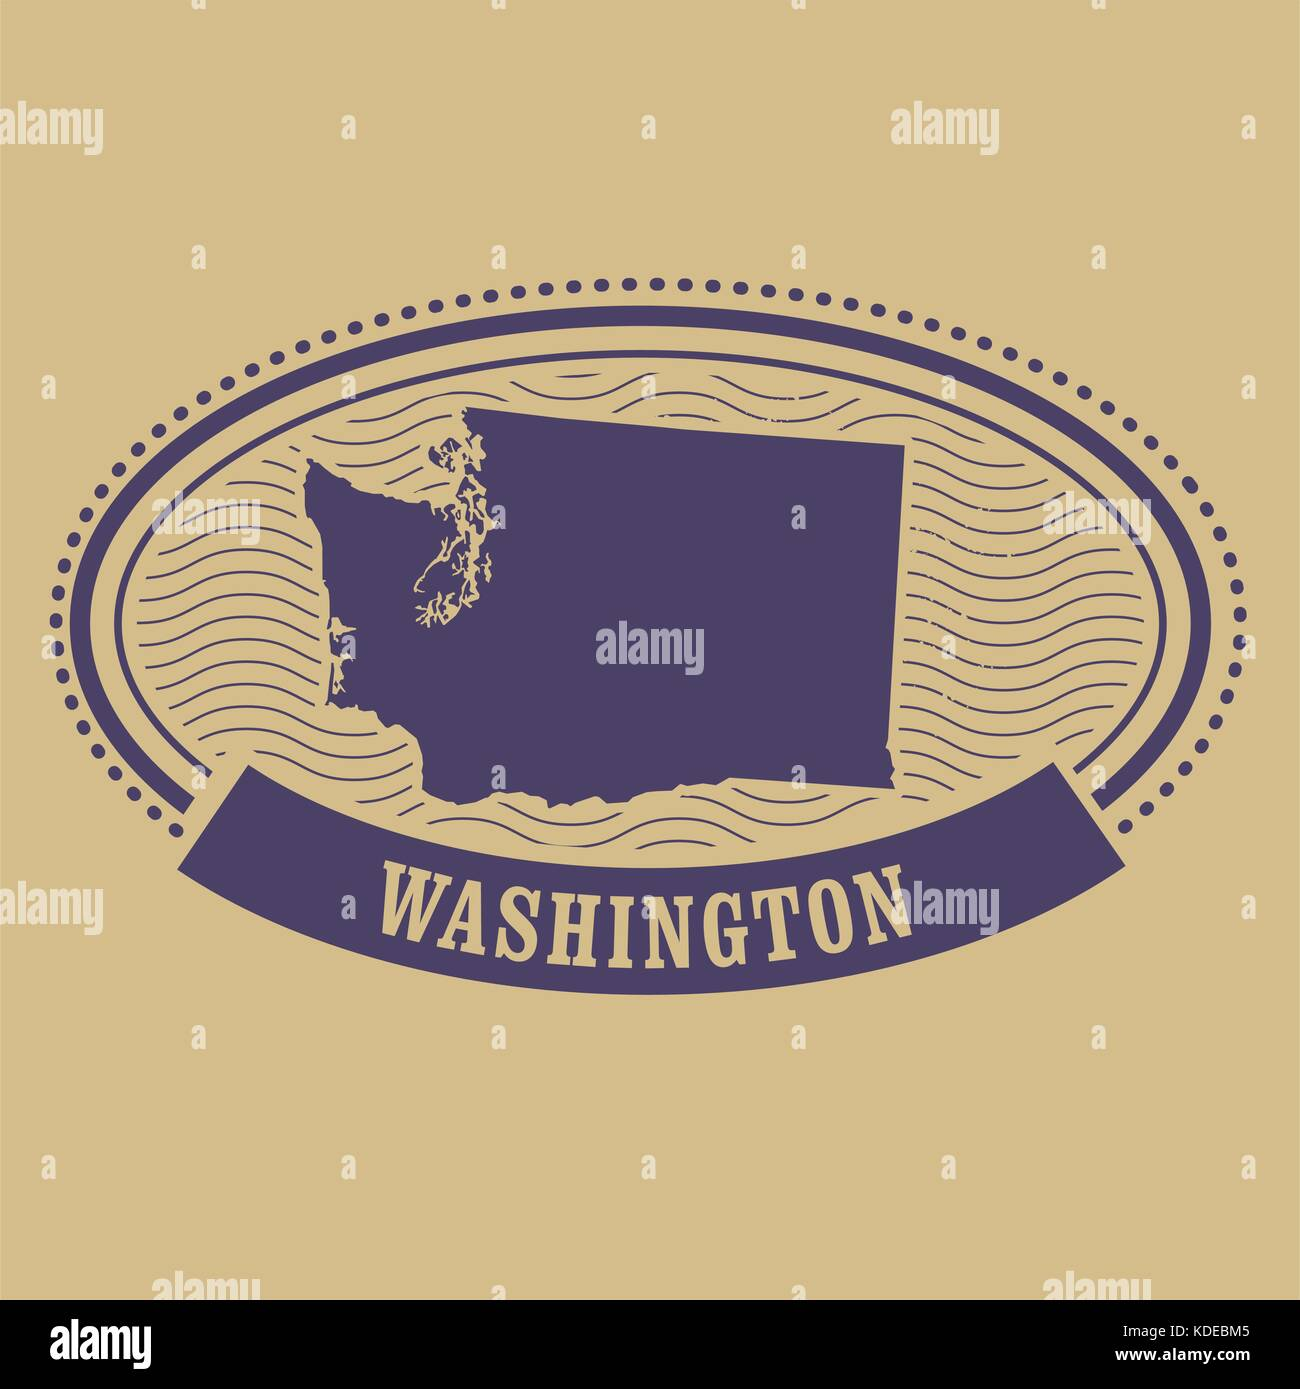 Washington map silhouette - oval stamp - Stock Vector